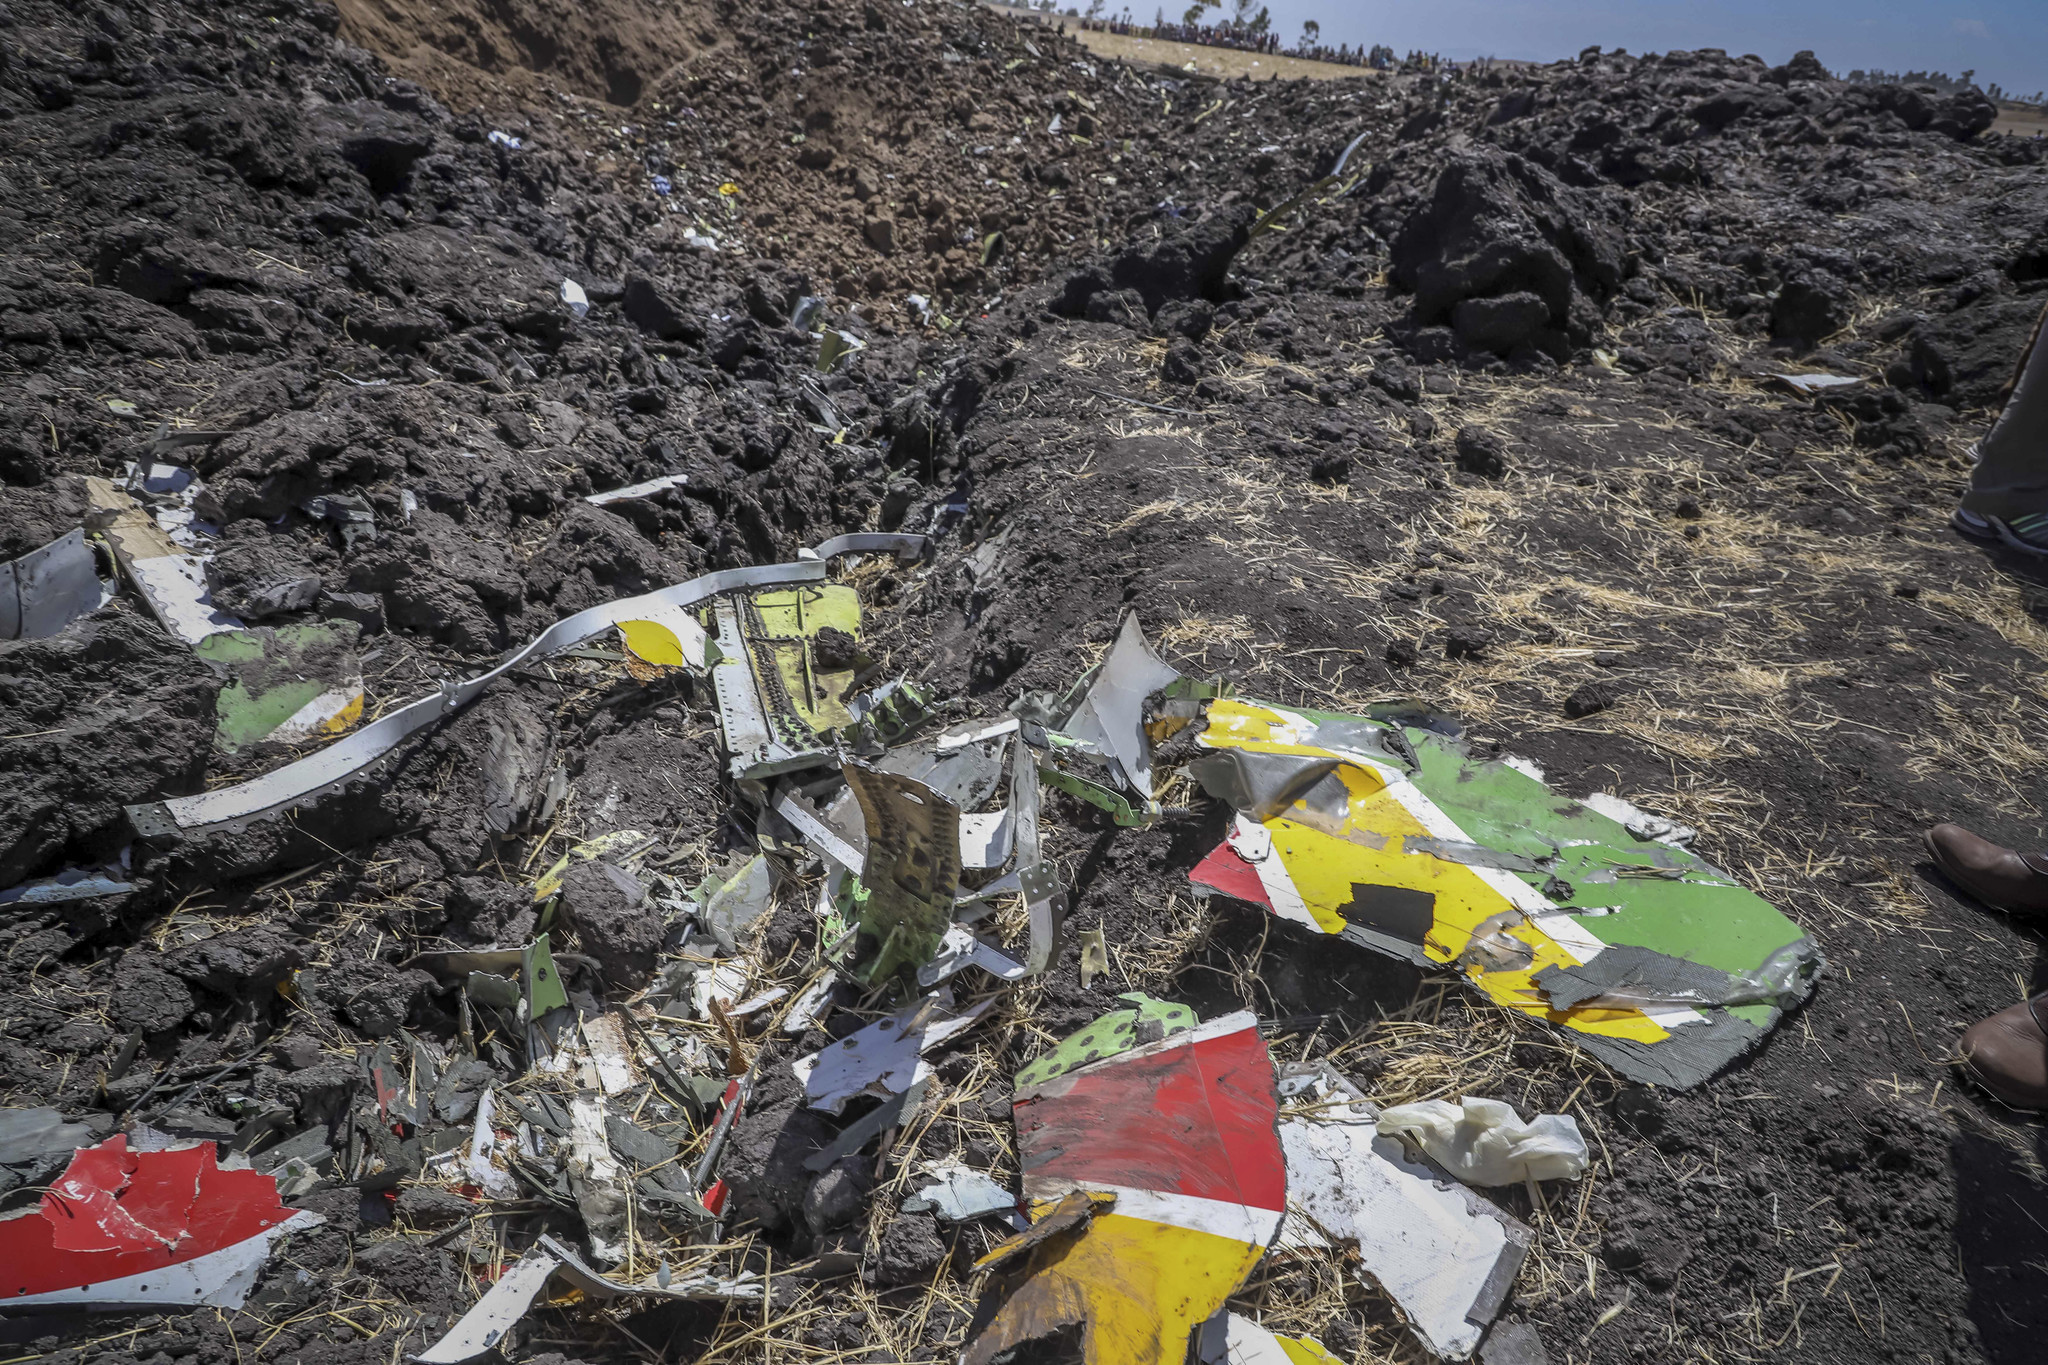 Plane crashes en route from Ethiopia to Kenya, killing all 157 people on board